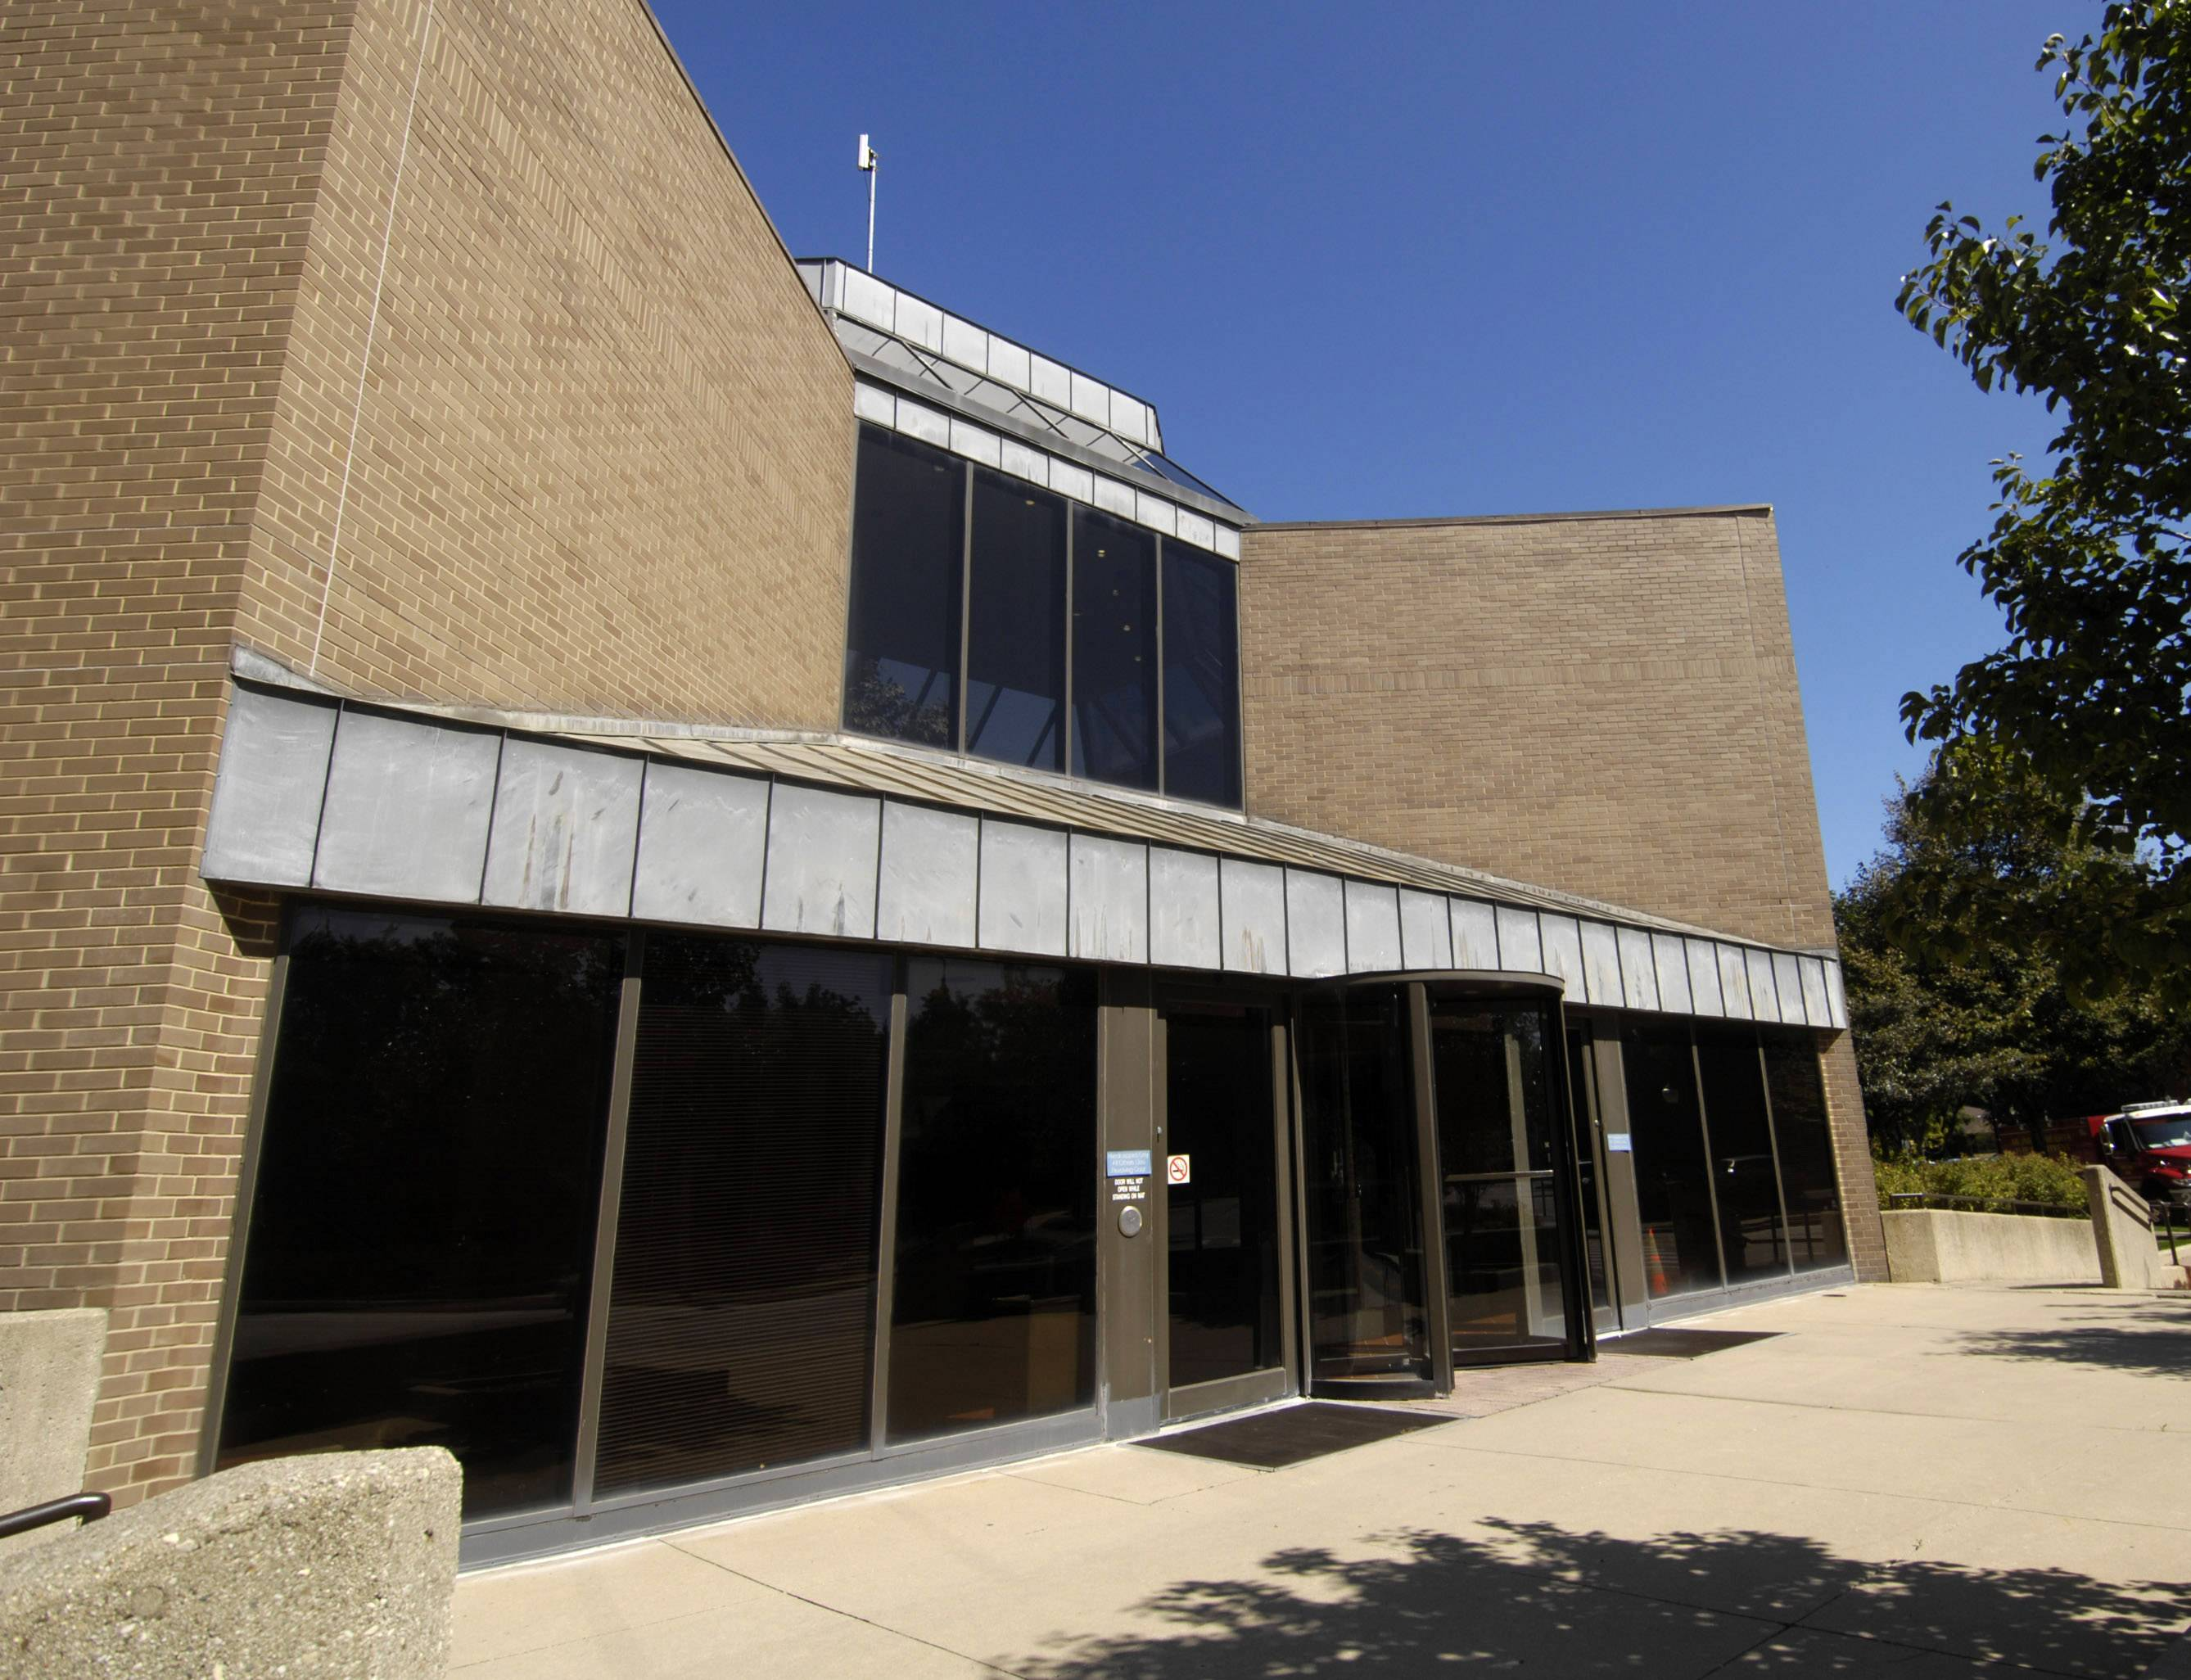 Arlington Hts. to pursue new police station on current site